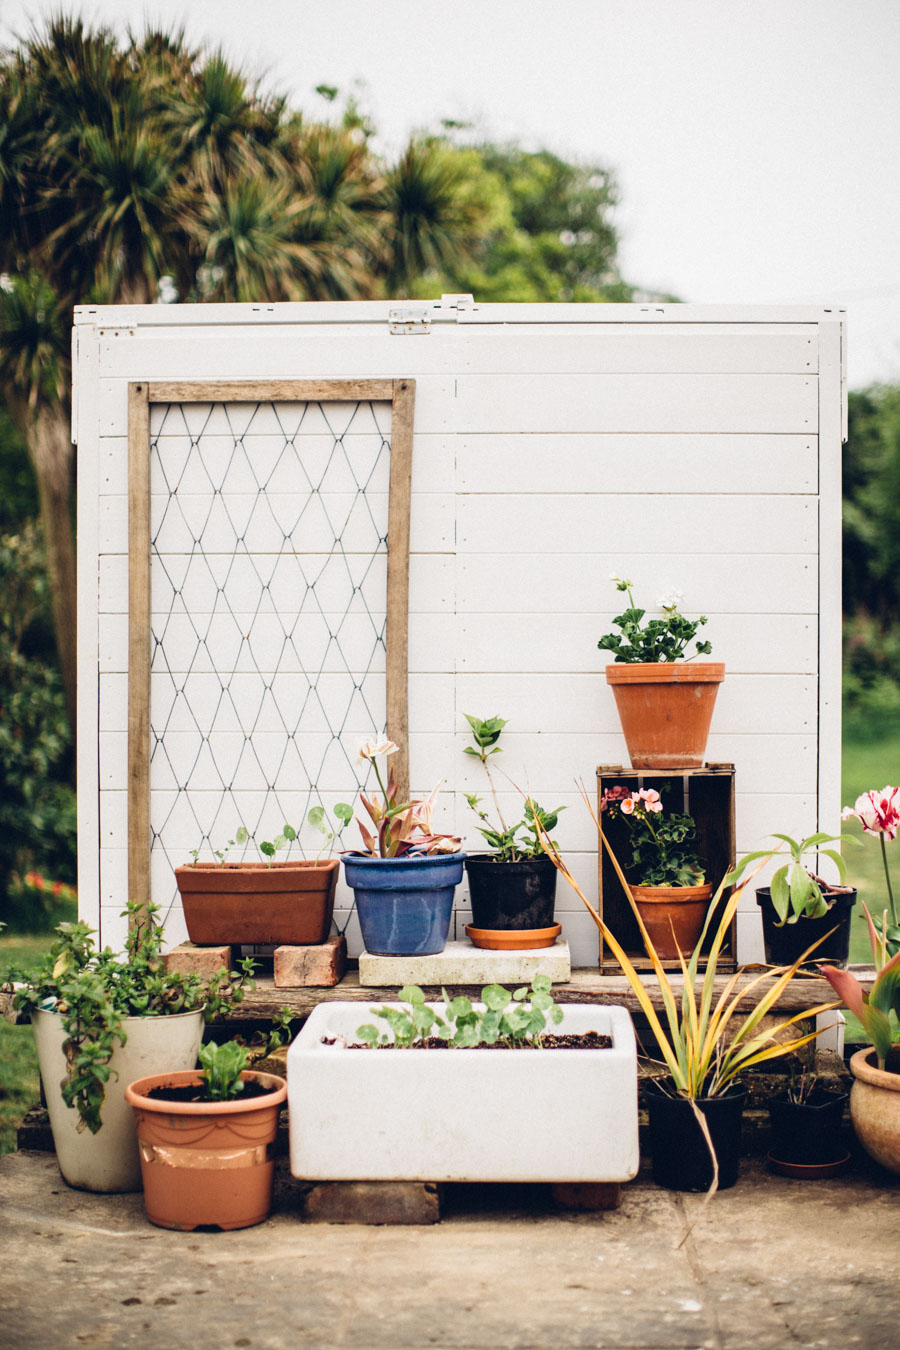 Vintage greenhouse style